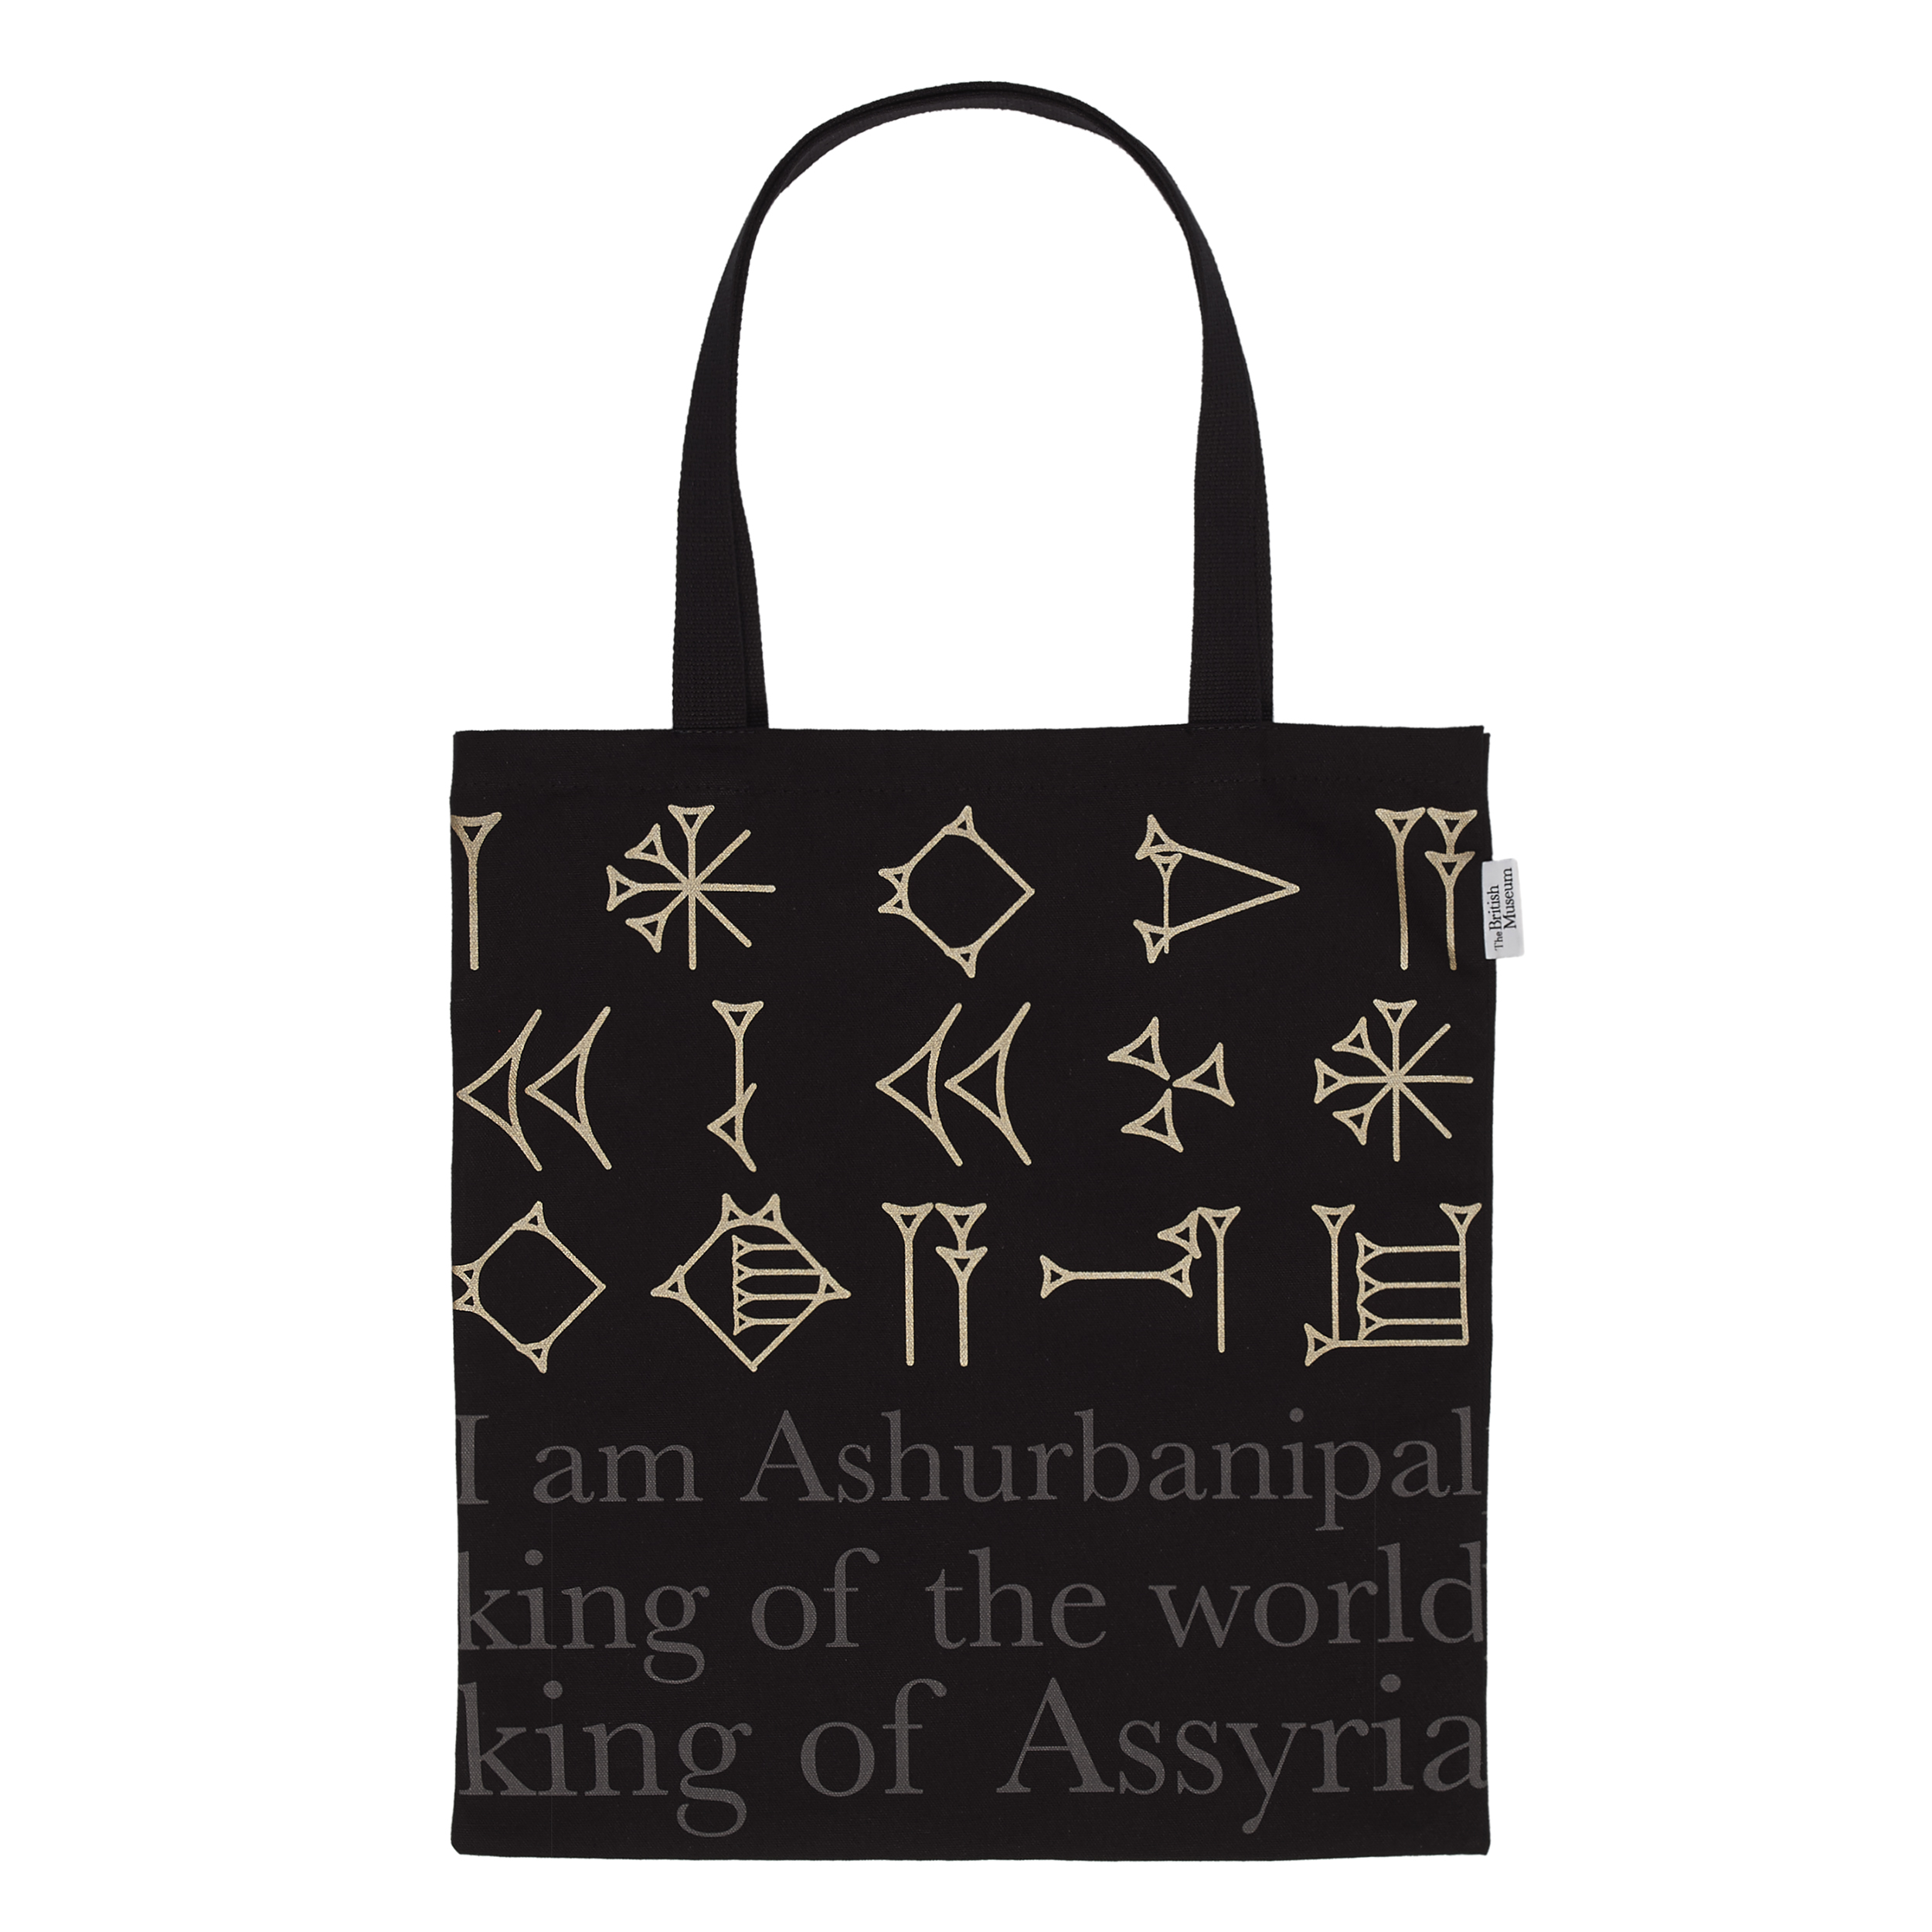 Cuneiform totebag